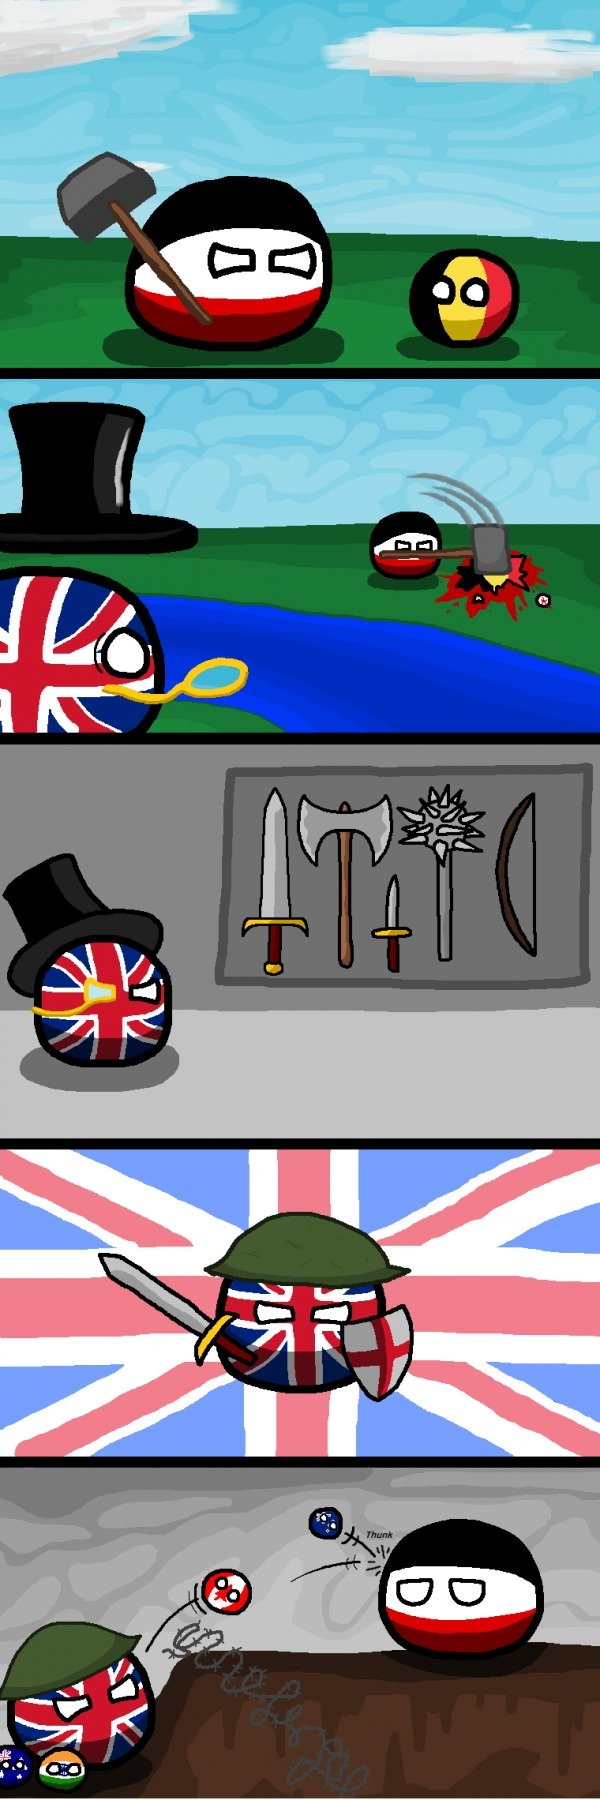 The British Way. .. Don't forget airdropping opium, truly the best tactic.